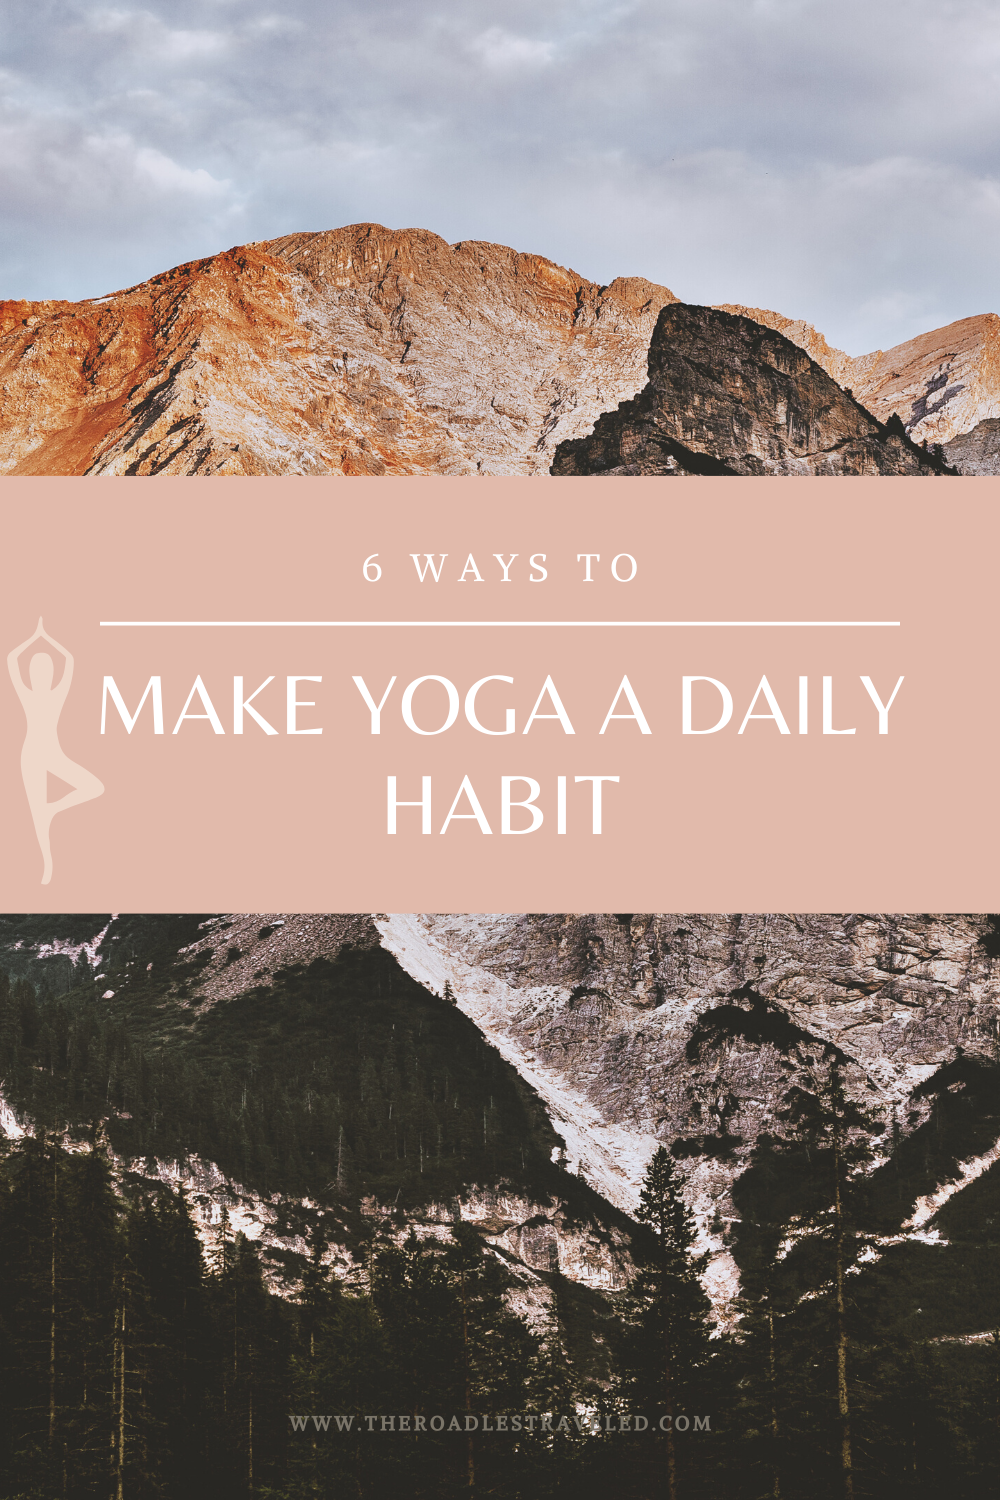 6 Ways To Make Yoga A Daily Habit The Road Les Traveled Yoga Daily Habits Yoga For Beginners